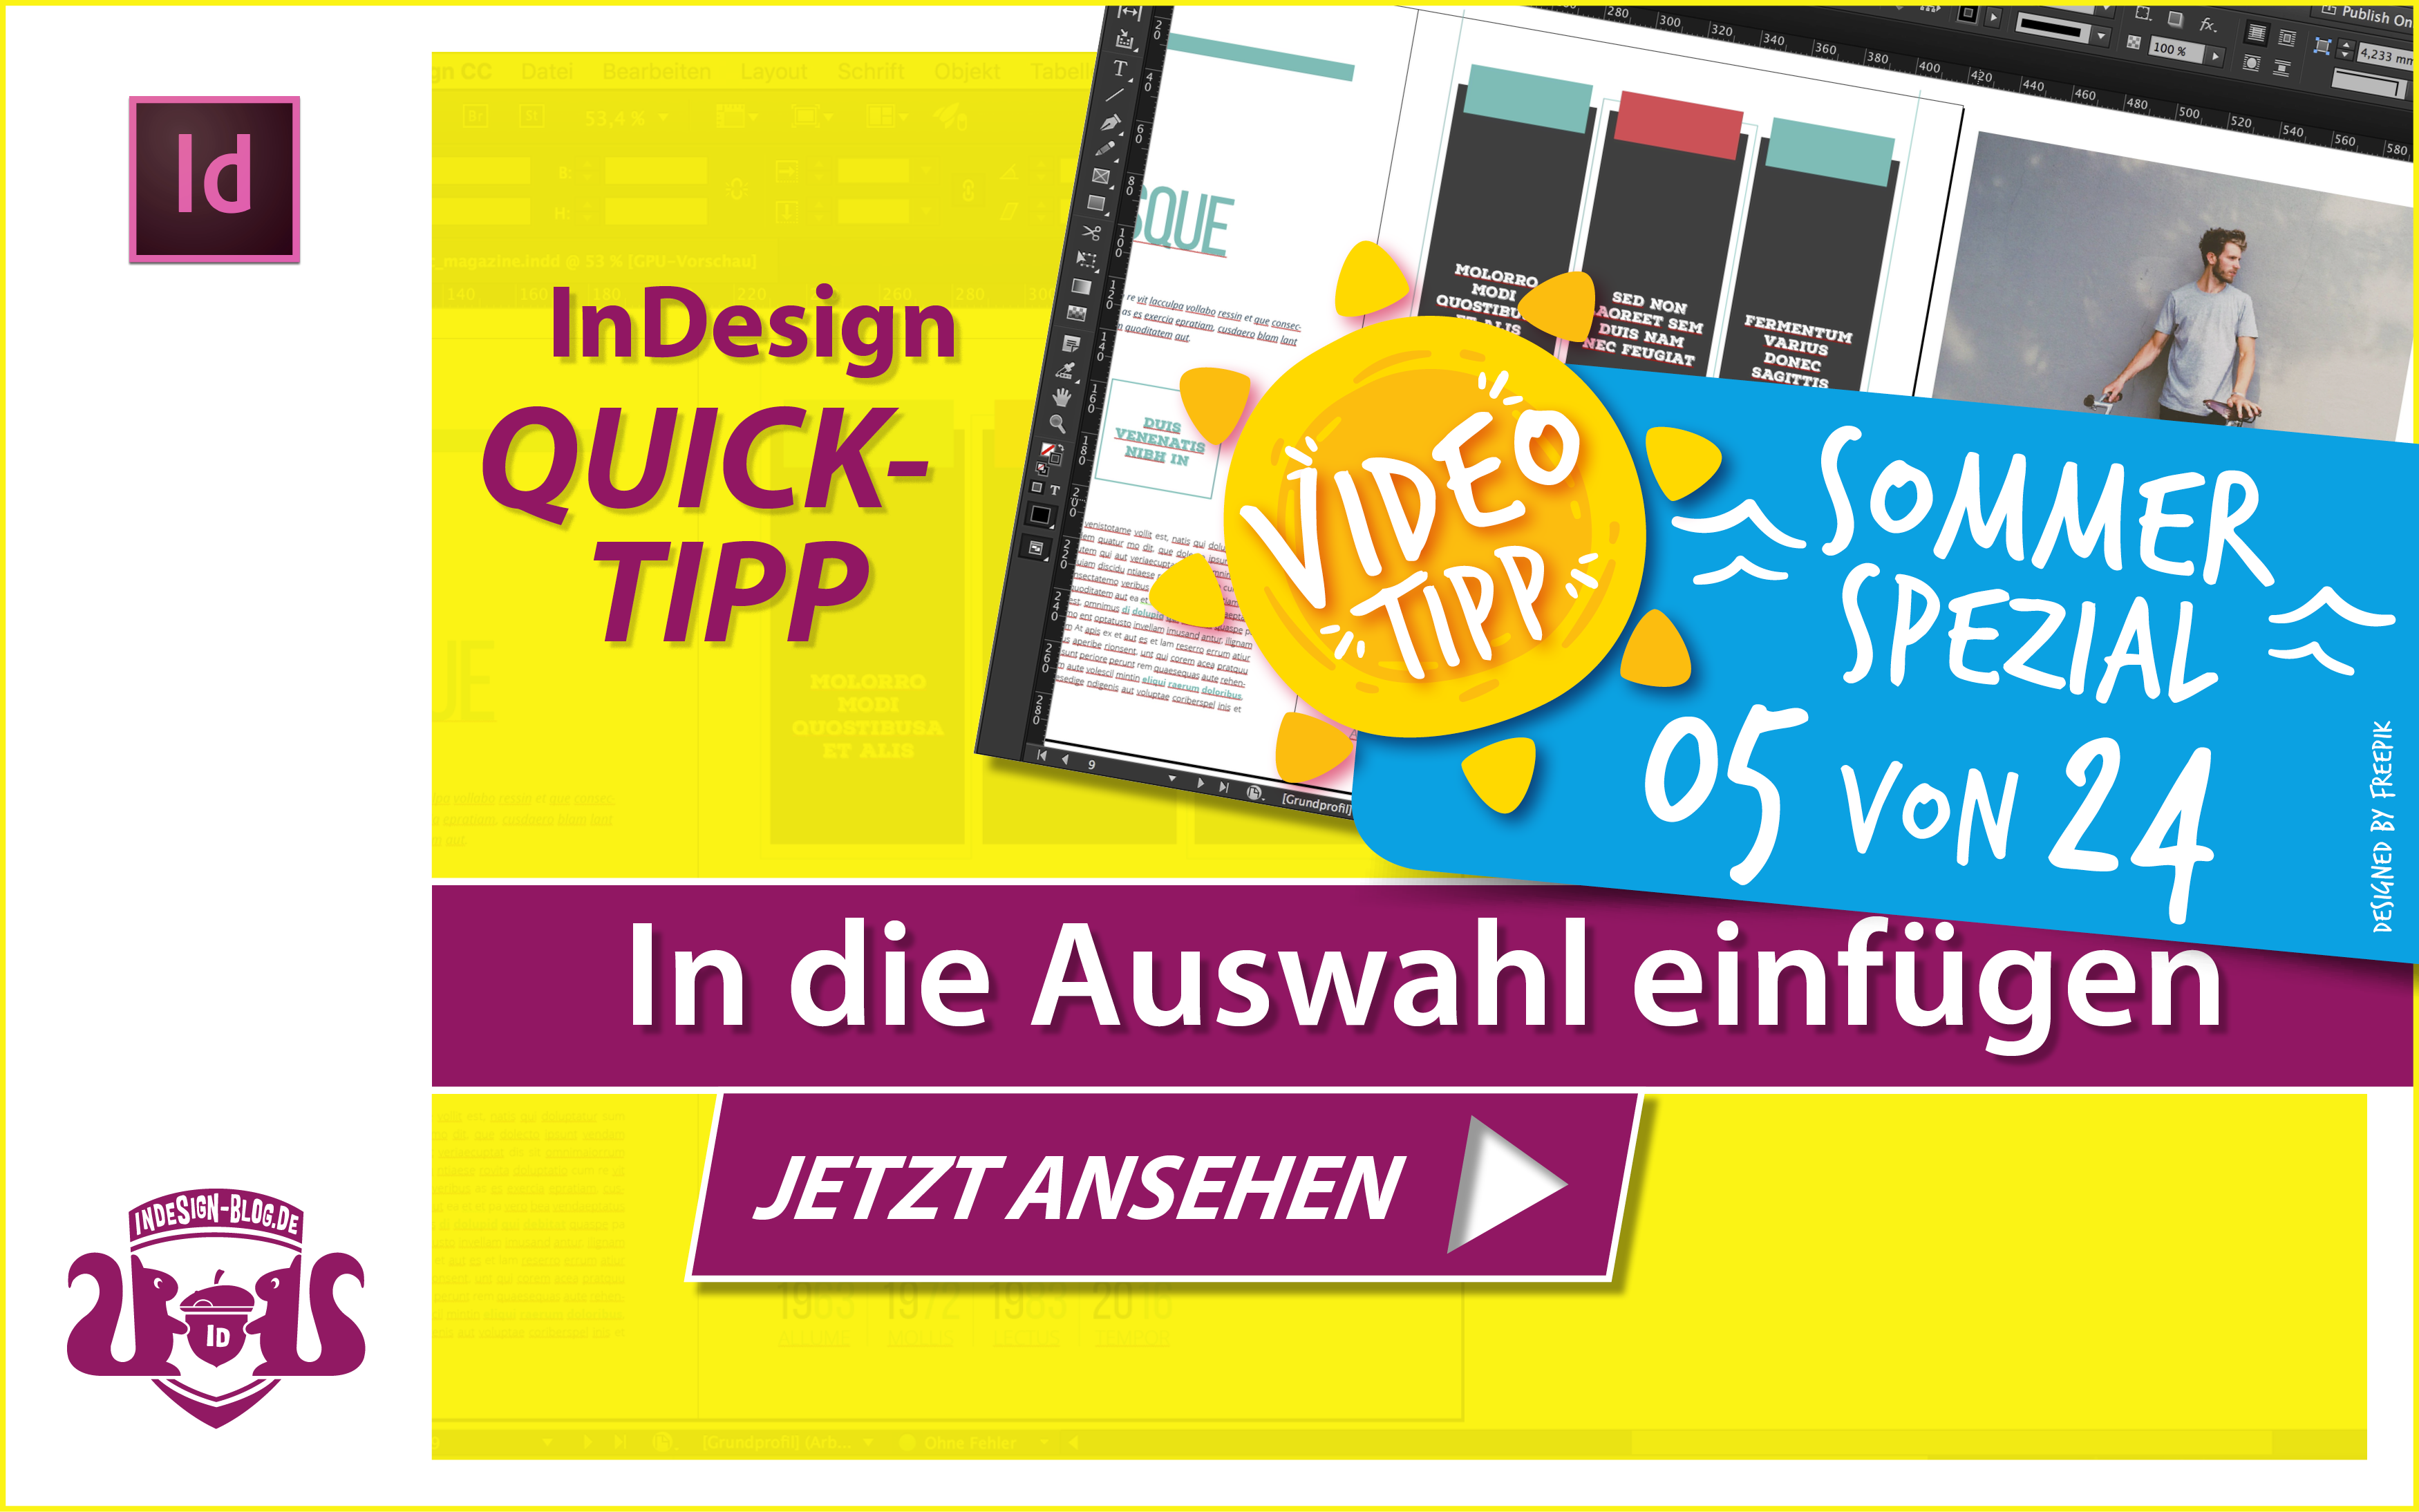 Screenshot – Video In die Auswahl einfügen in InDesign